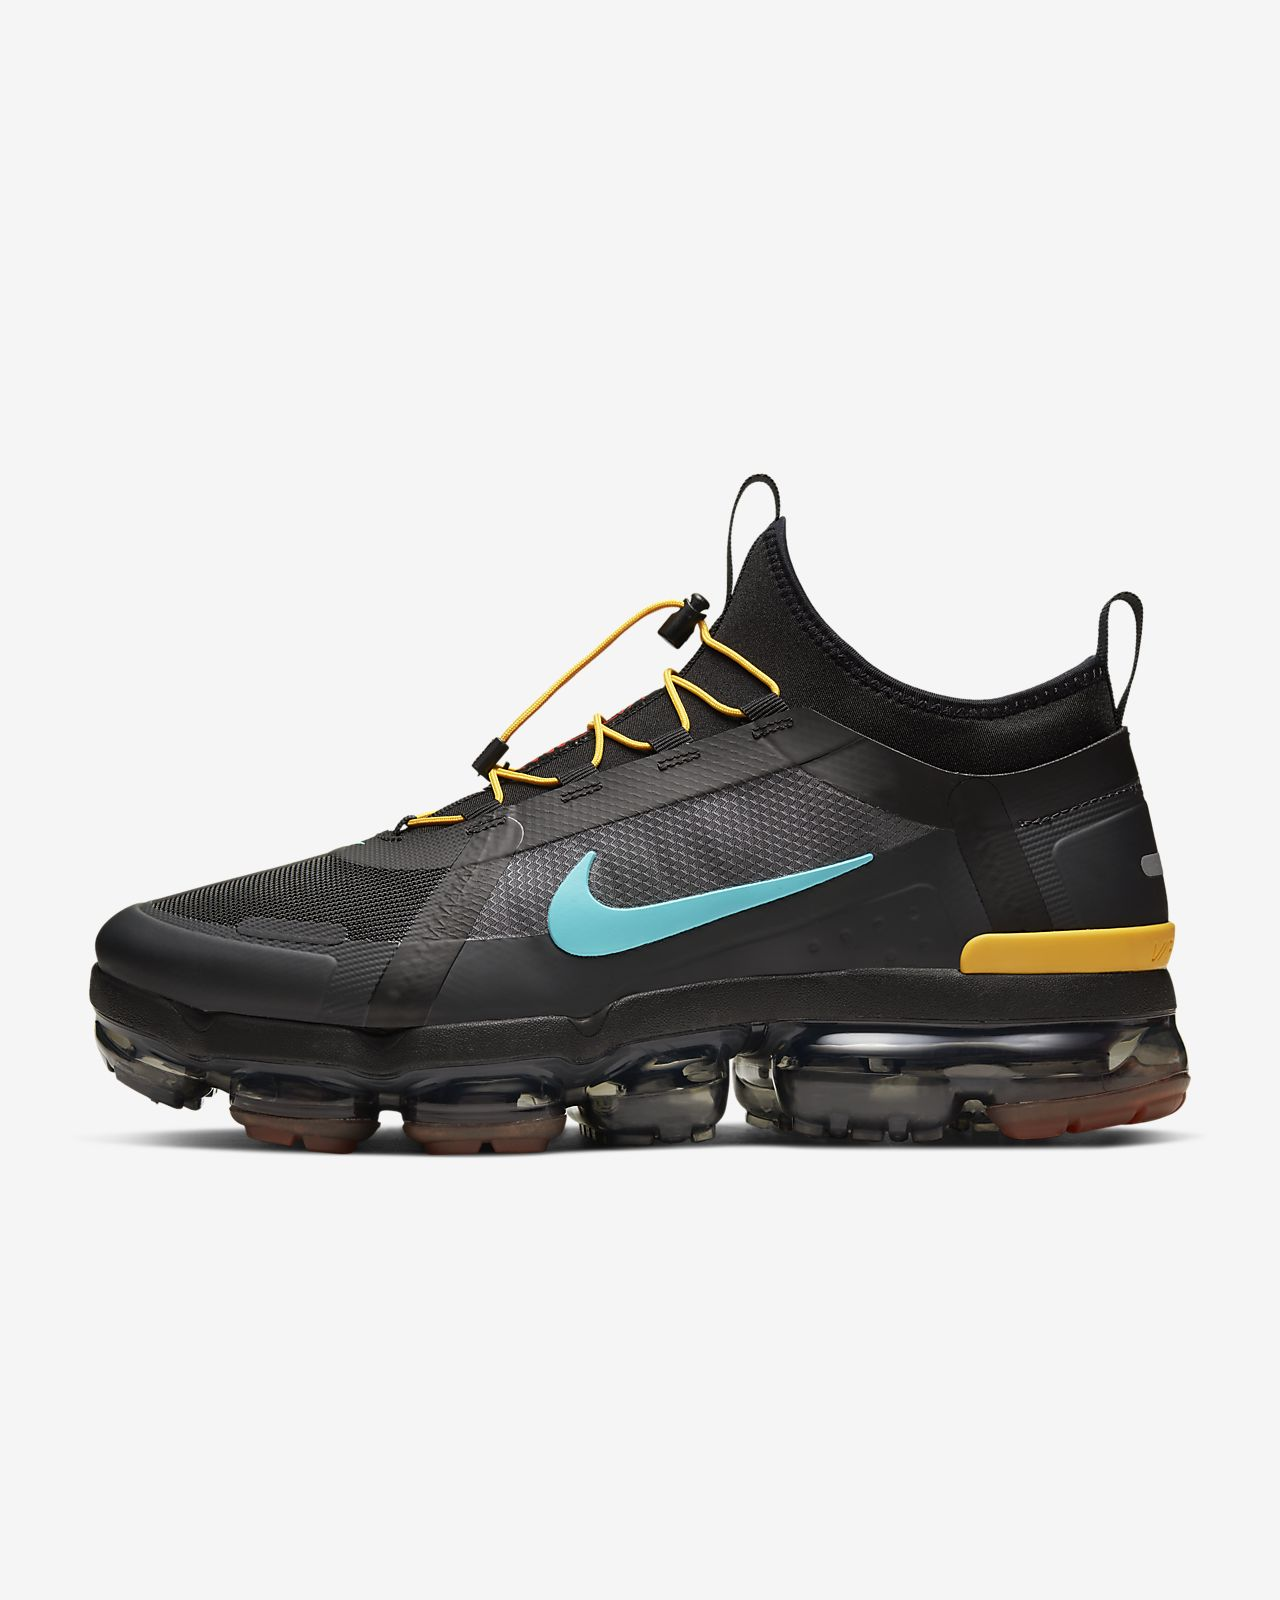 arriving buying now huge sale Nike Air VaporMax 2019 Utility Men's Shoe